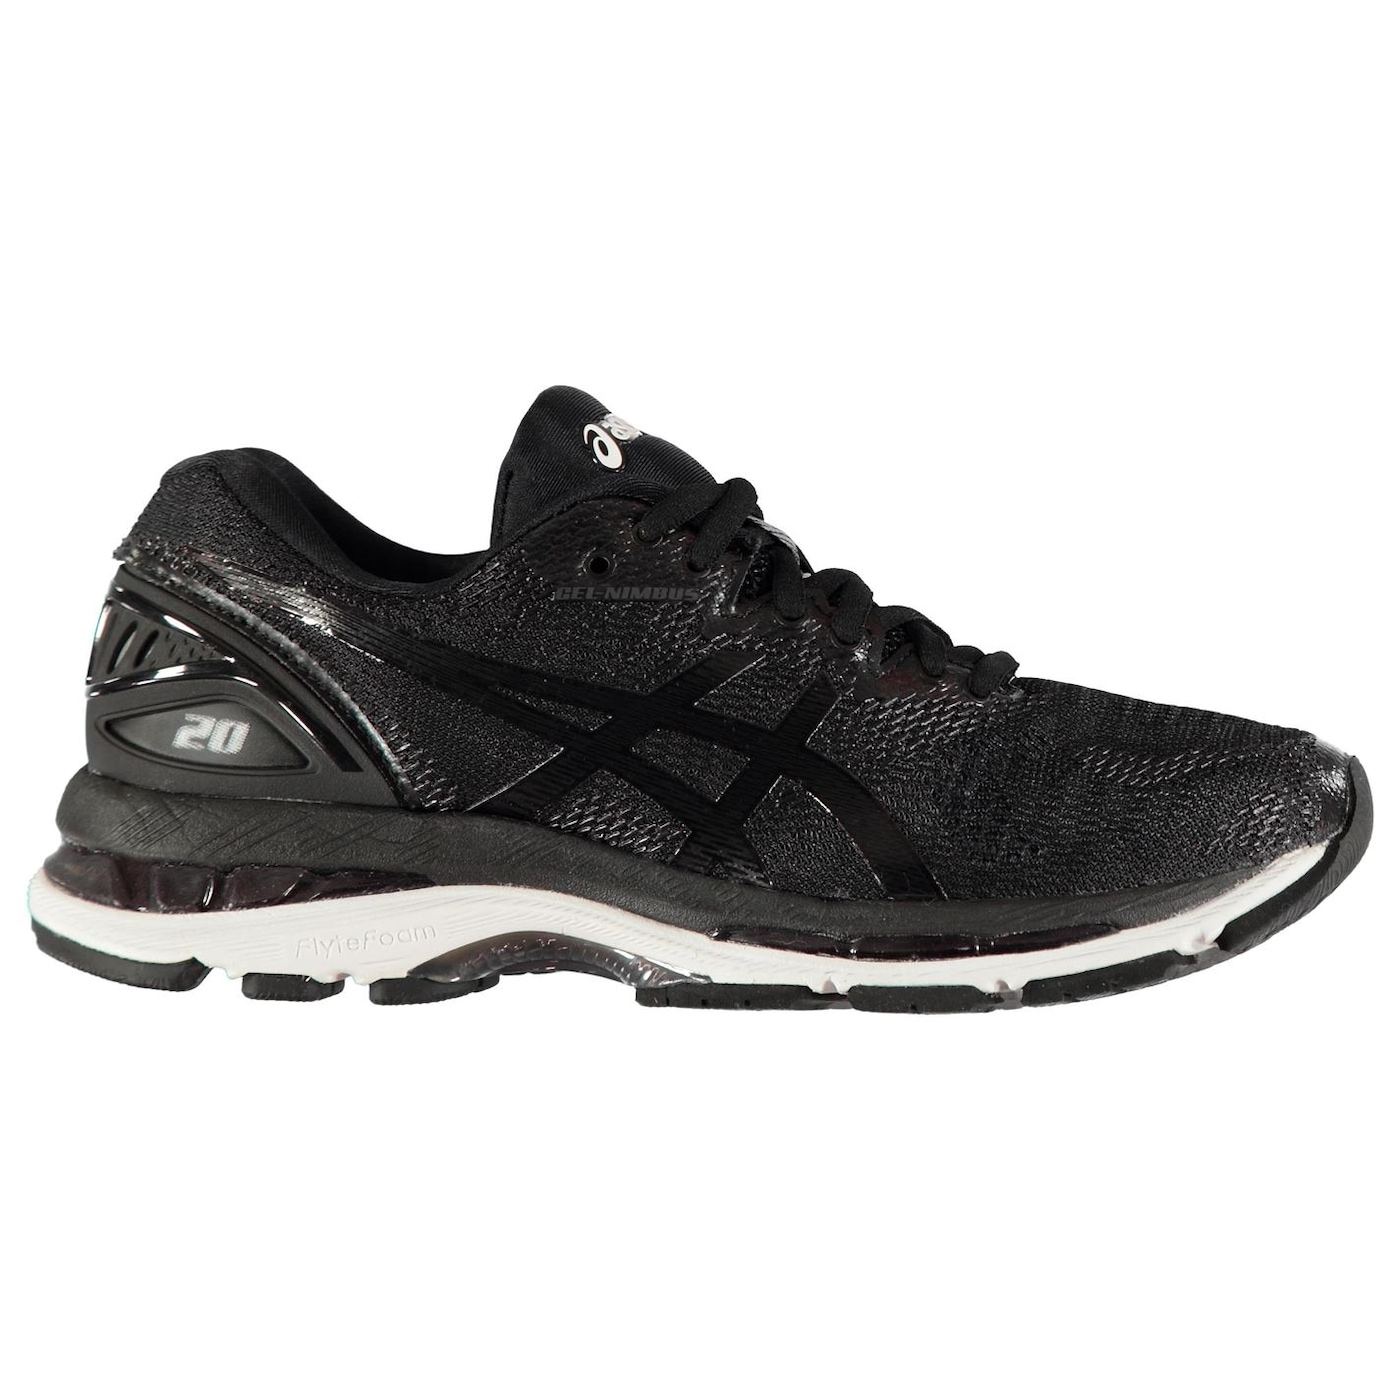 Asics GT 2000 6 Ladies Running Shoes